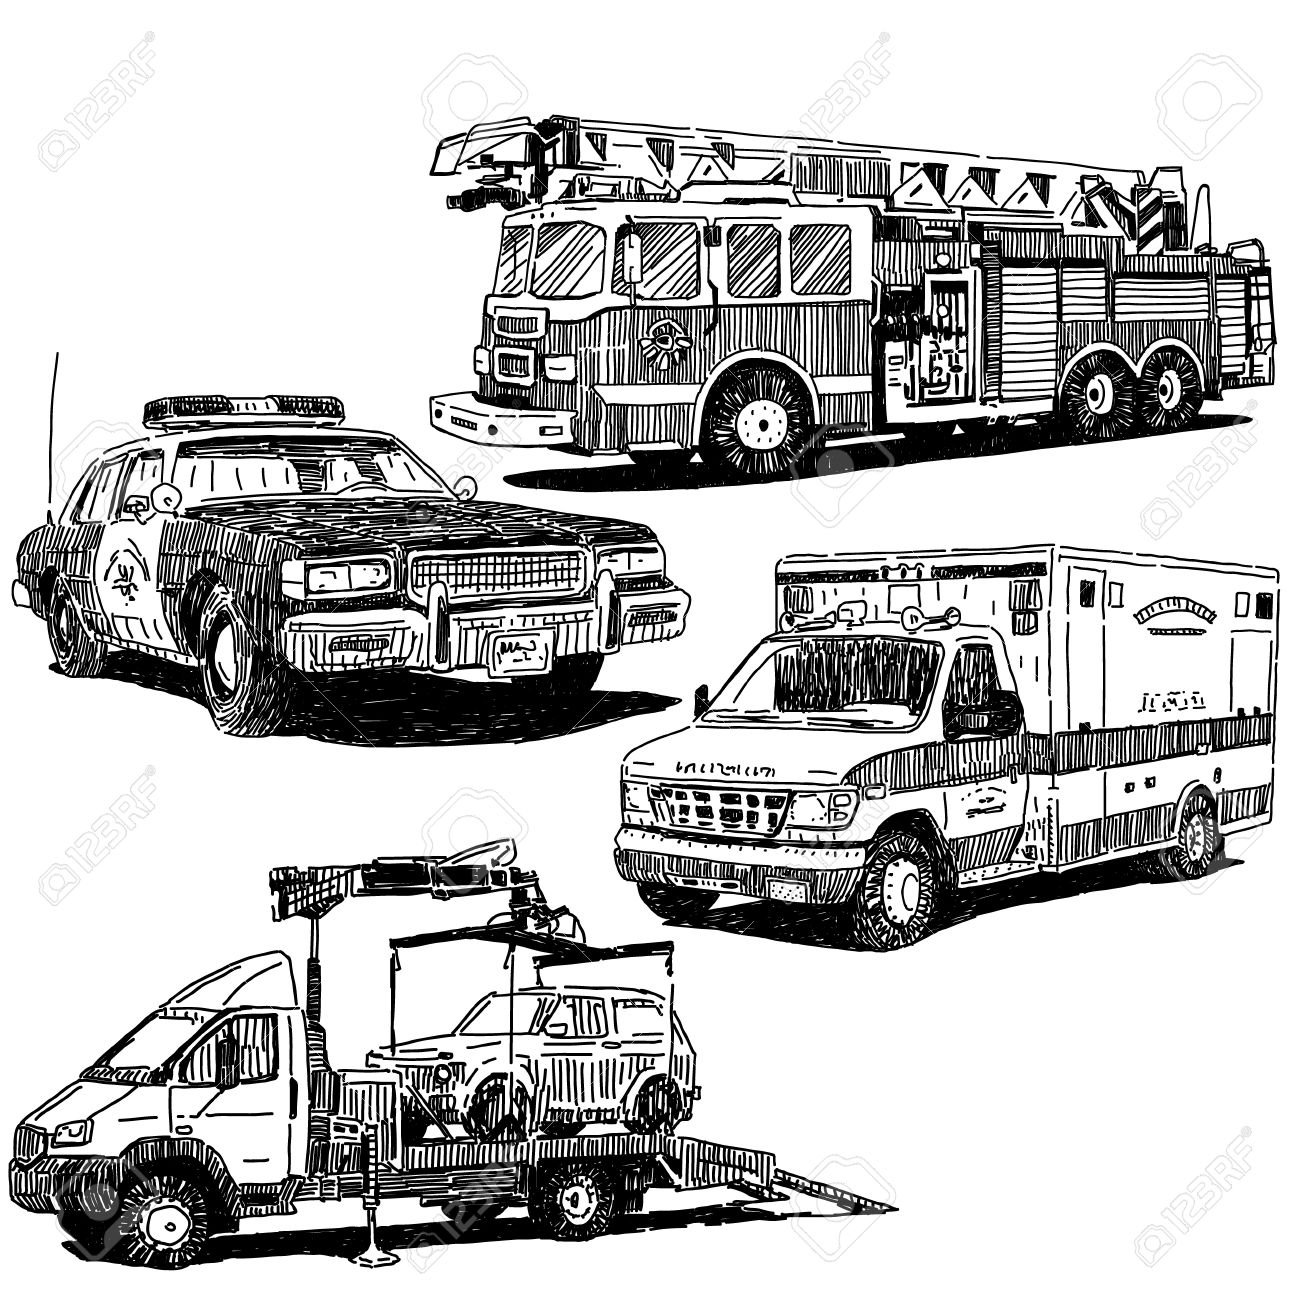 Fire Truck Police Car Ambulance And Tow Truck Drawings Set